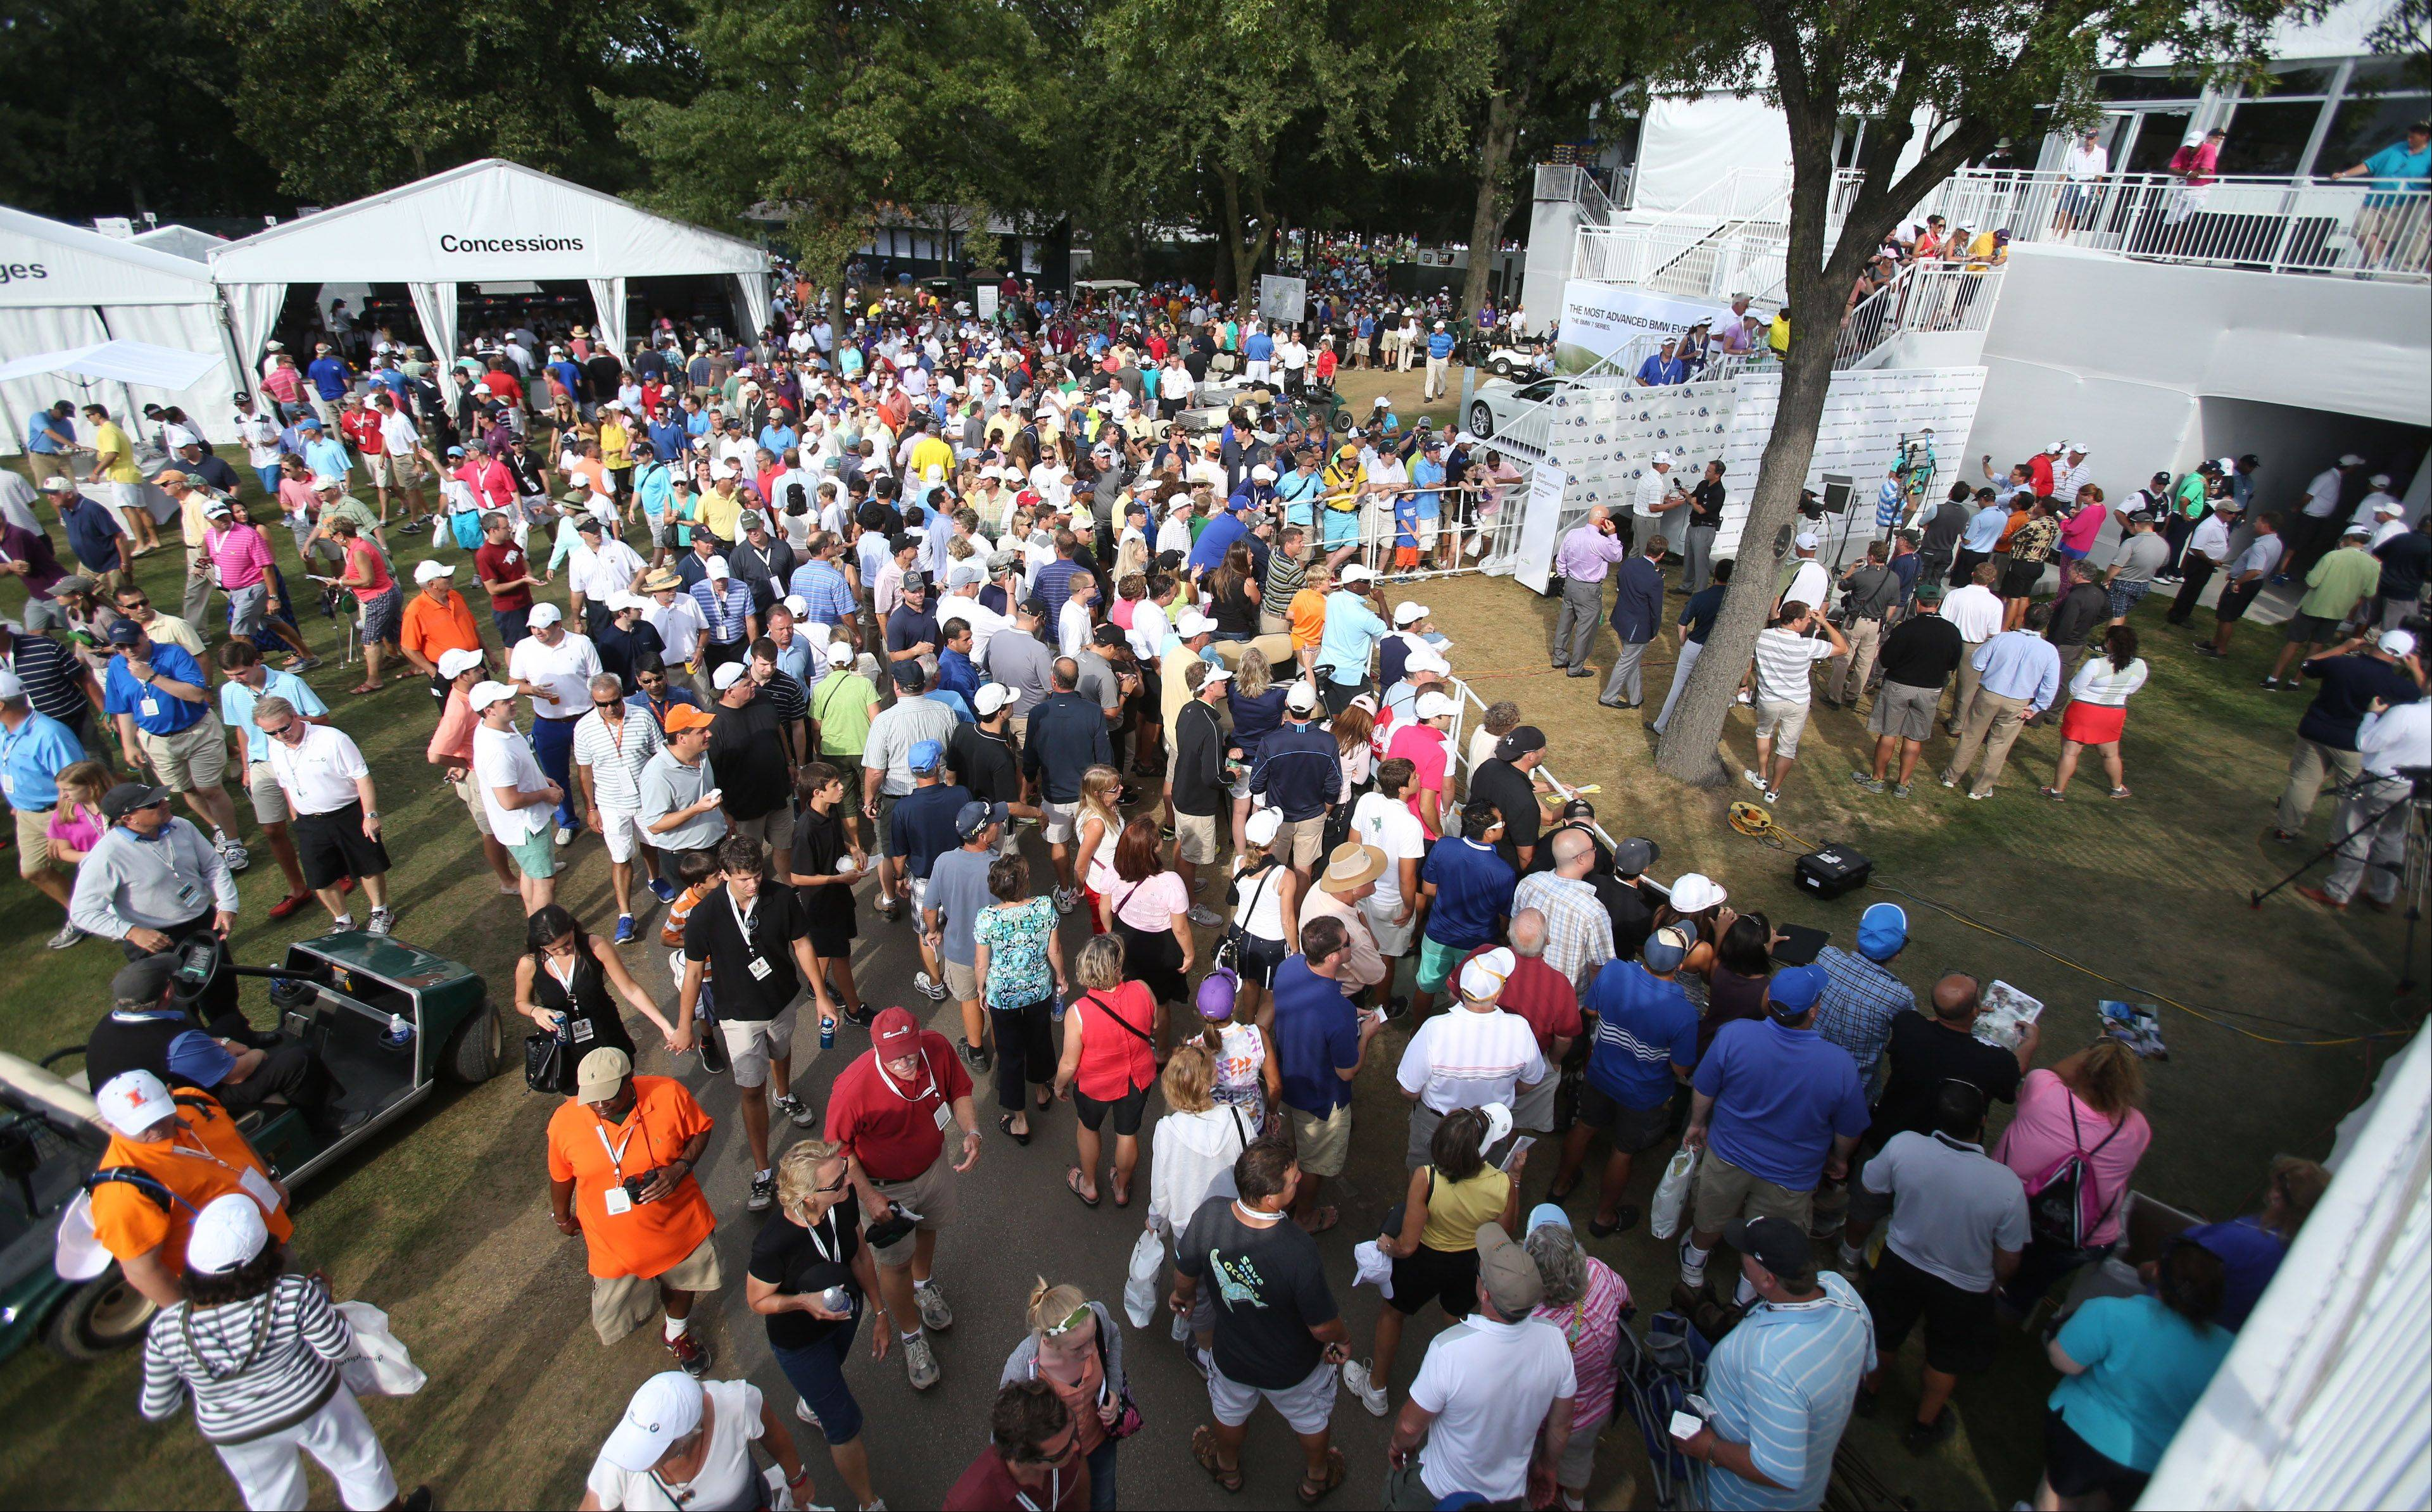 Fans wait to get Tiger Woods' autograph.